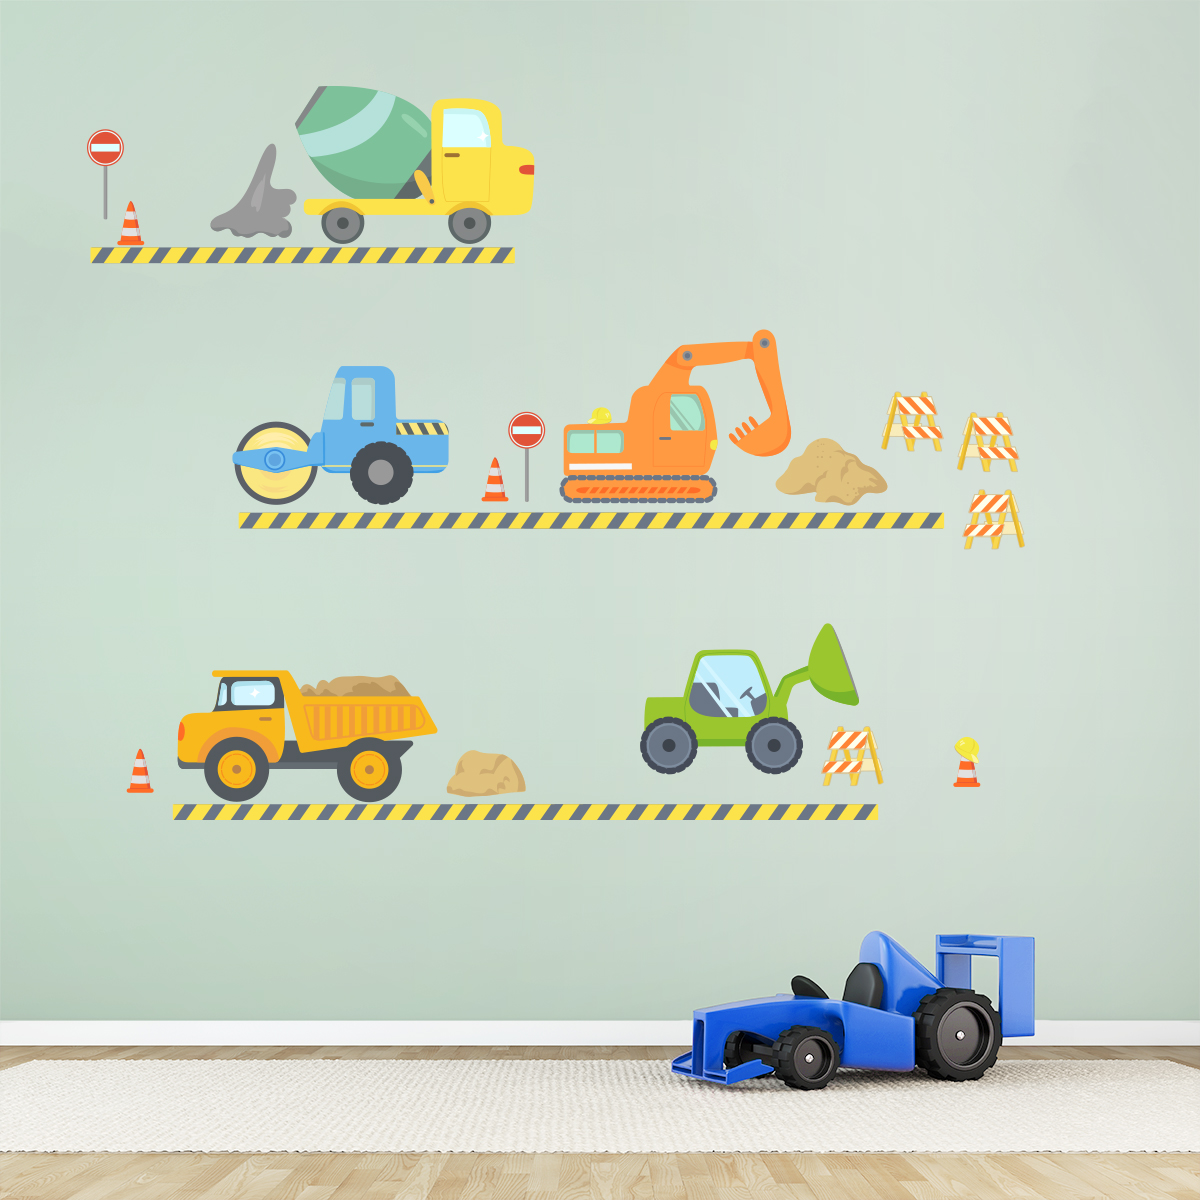 Construction fun printed wall decal construction fun printed wall decal construction wall decal amipublicfo Gallery